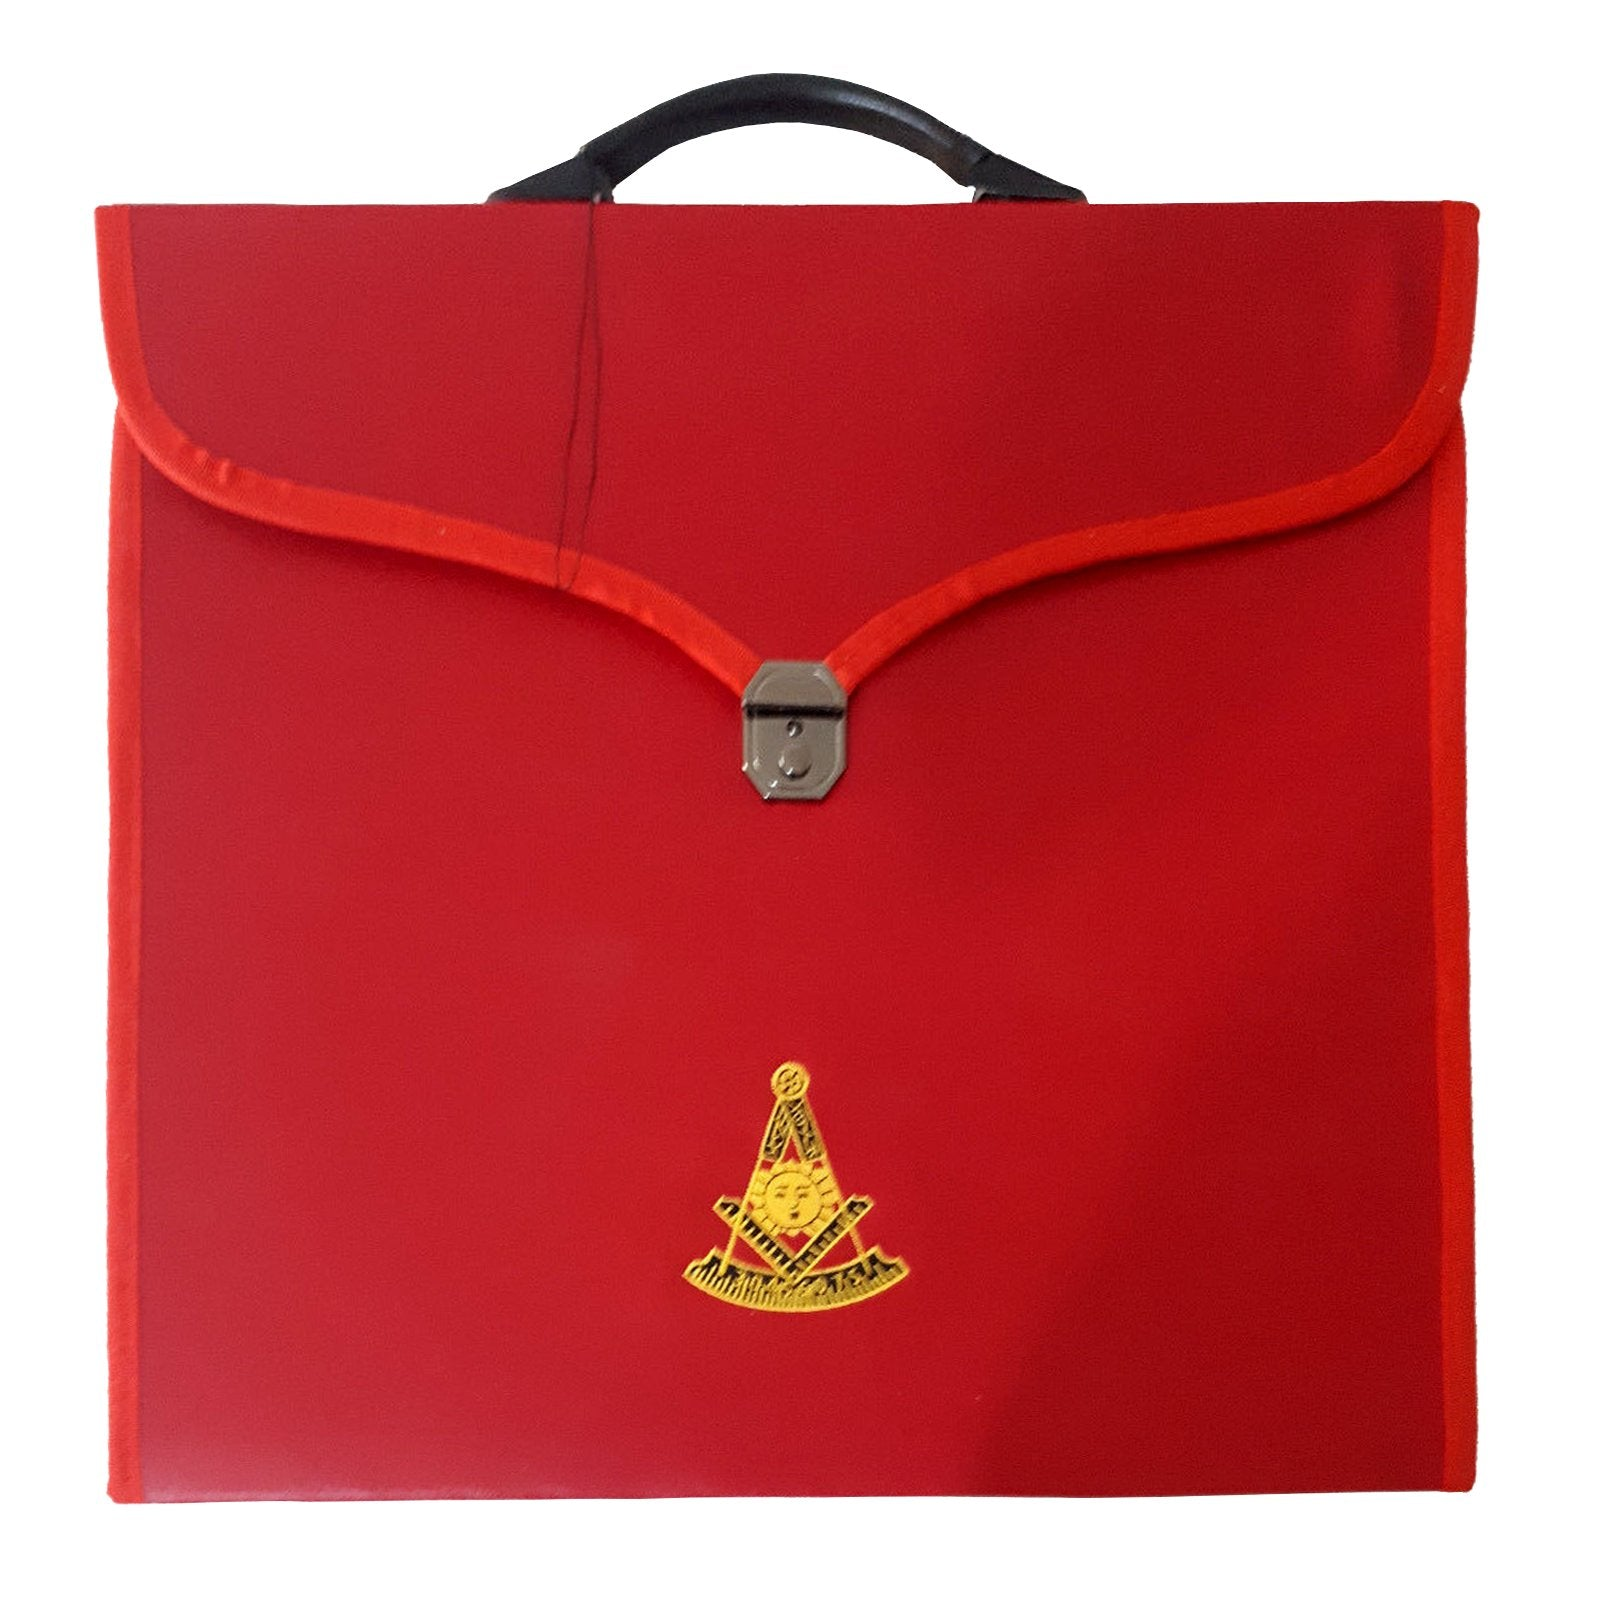 Masonic MM/WM and Provincial Full Dress Past Master Red Cases II - Bricks Masons